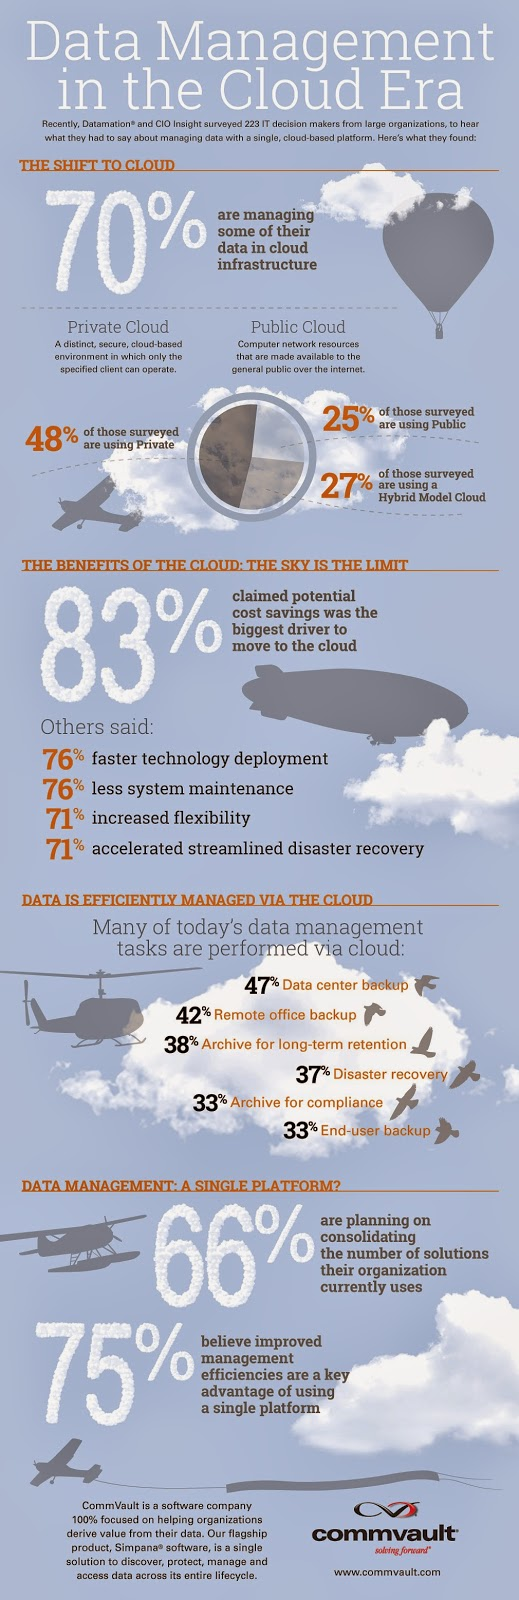 CommVault cloud data management infographic